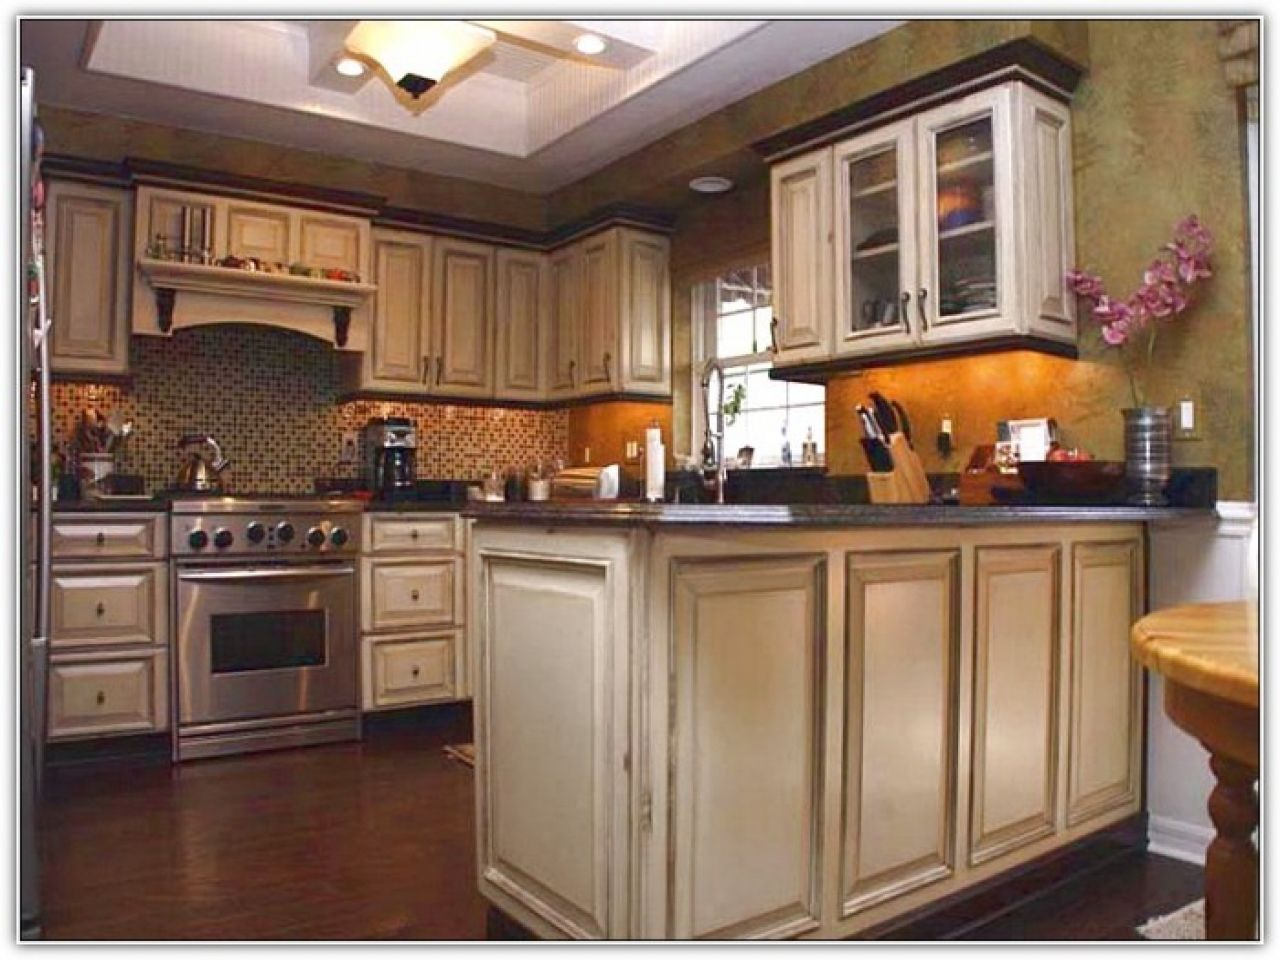 Redo Kitchen Cabinets Amazing Refinishing Ideas Ljve Me In Dalehollowlakeviews Pertaining To Redoing In 2020 Redo Kitchen Cabinets Kitchen Redo Kitchen Cabinet Colors